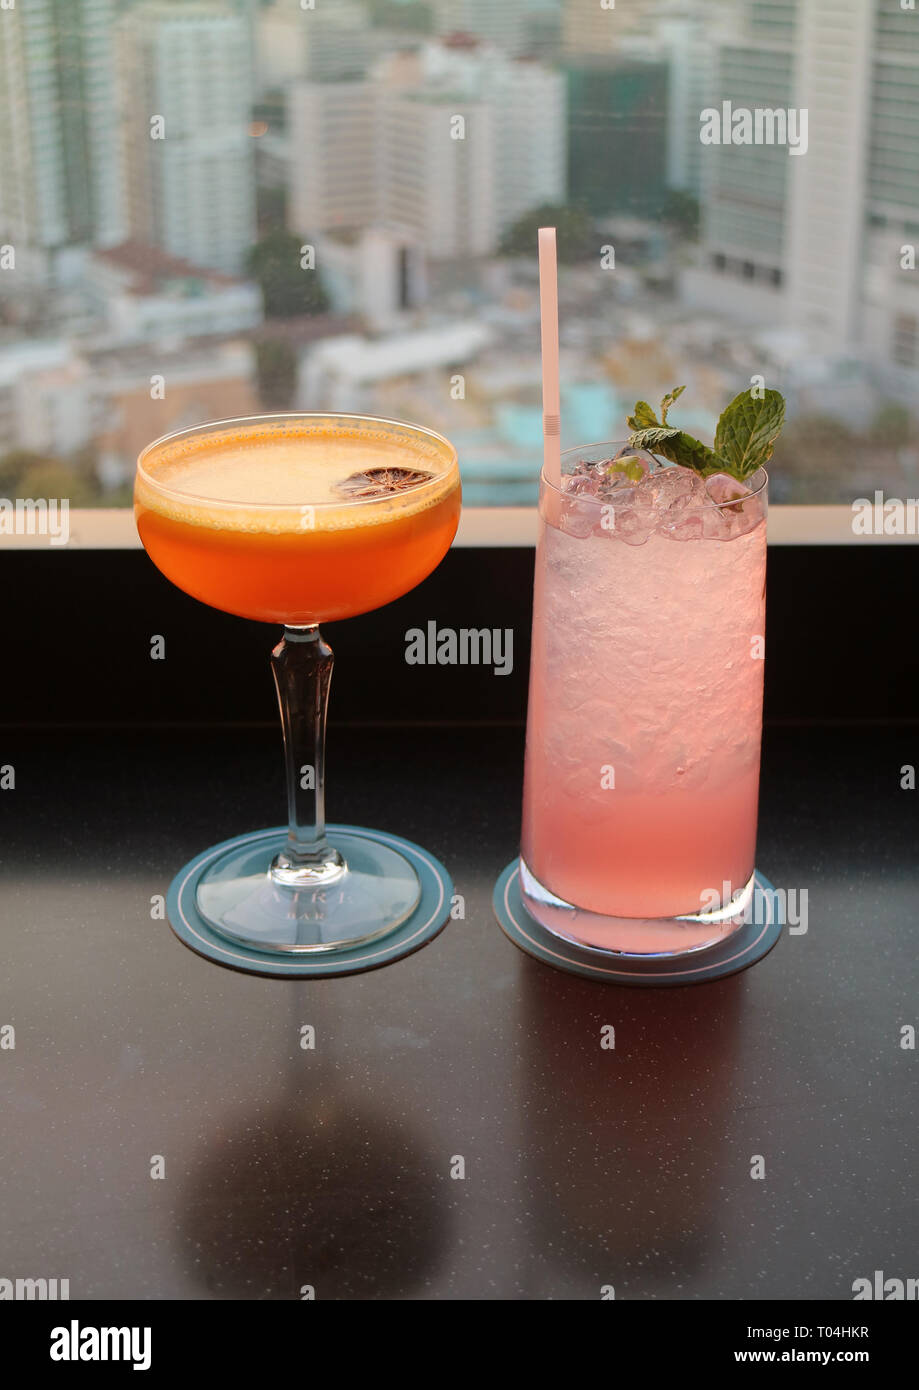 Two glasses of cocktail on the rooftop bar's table with blurry aerial urban view in background - Stock Image